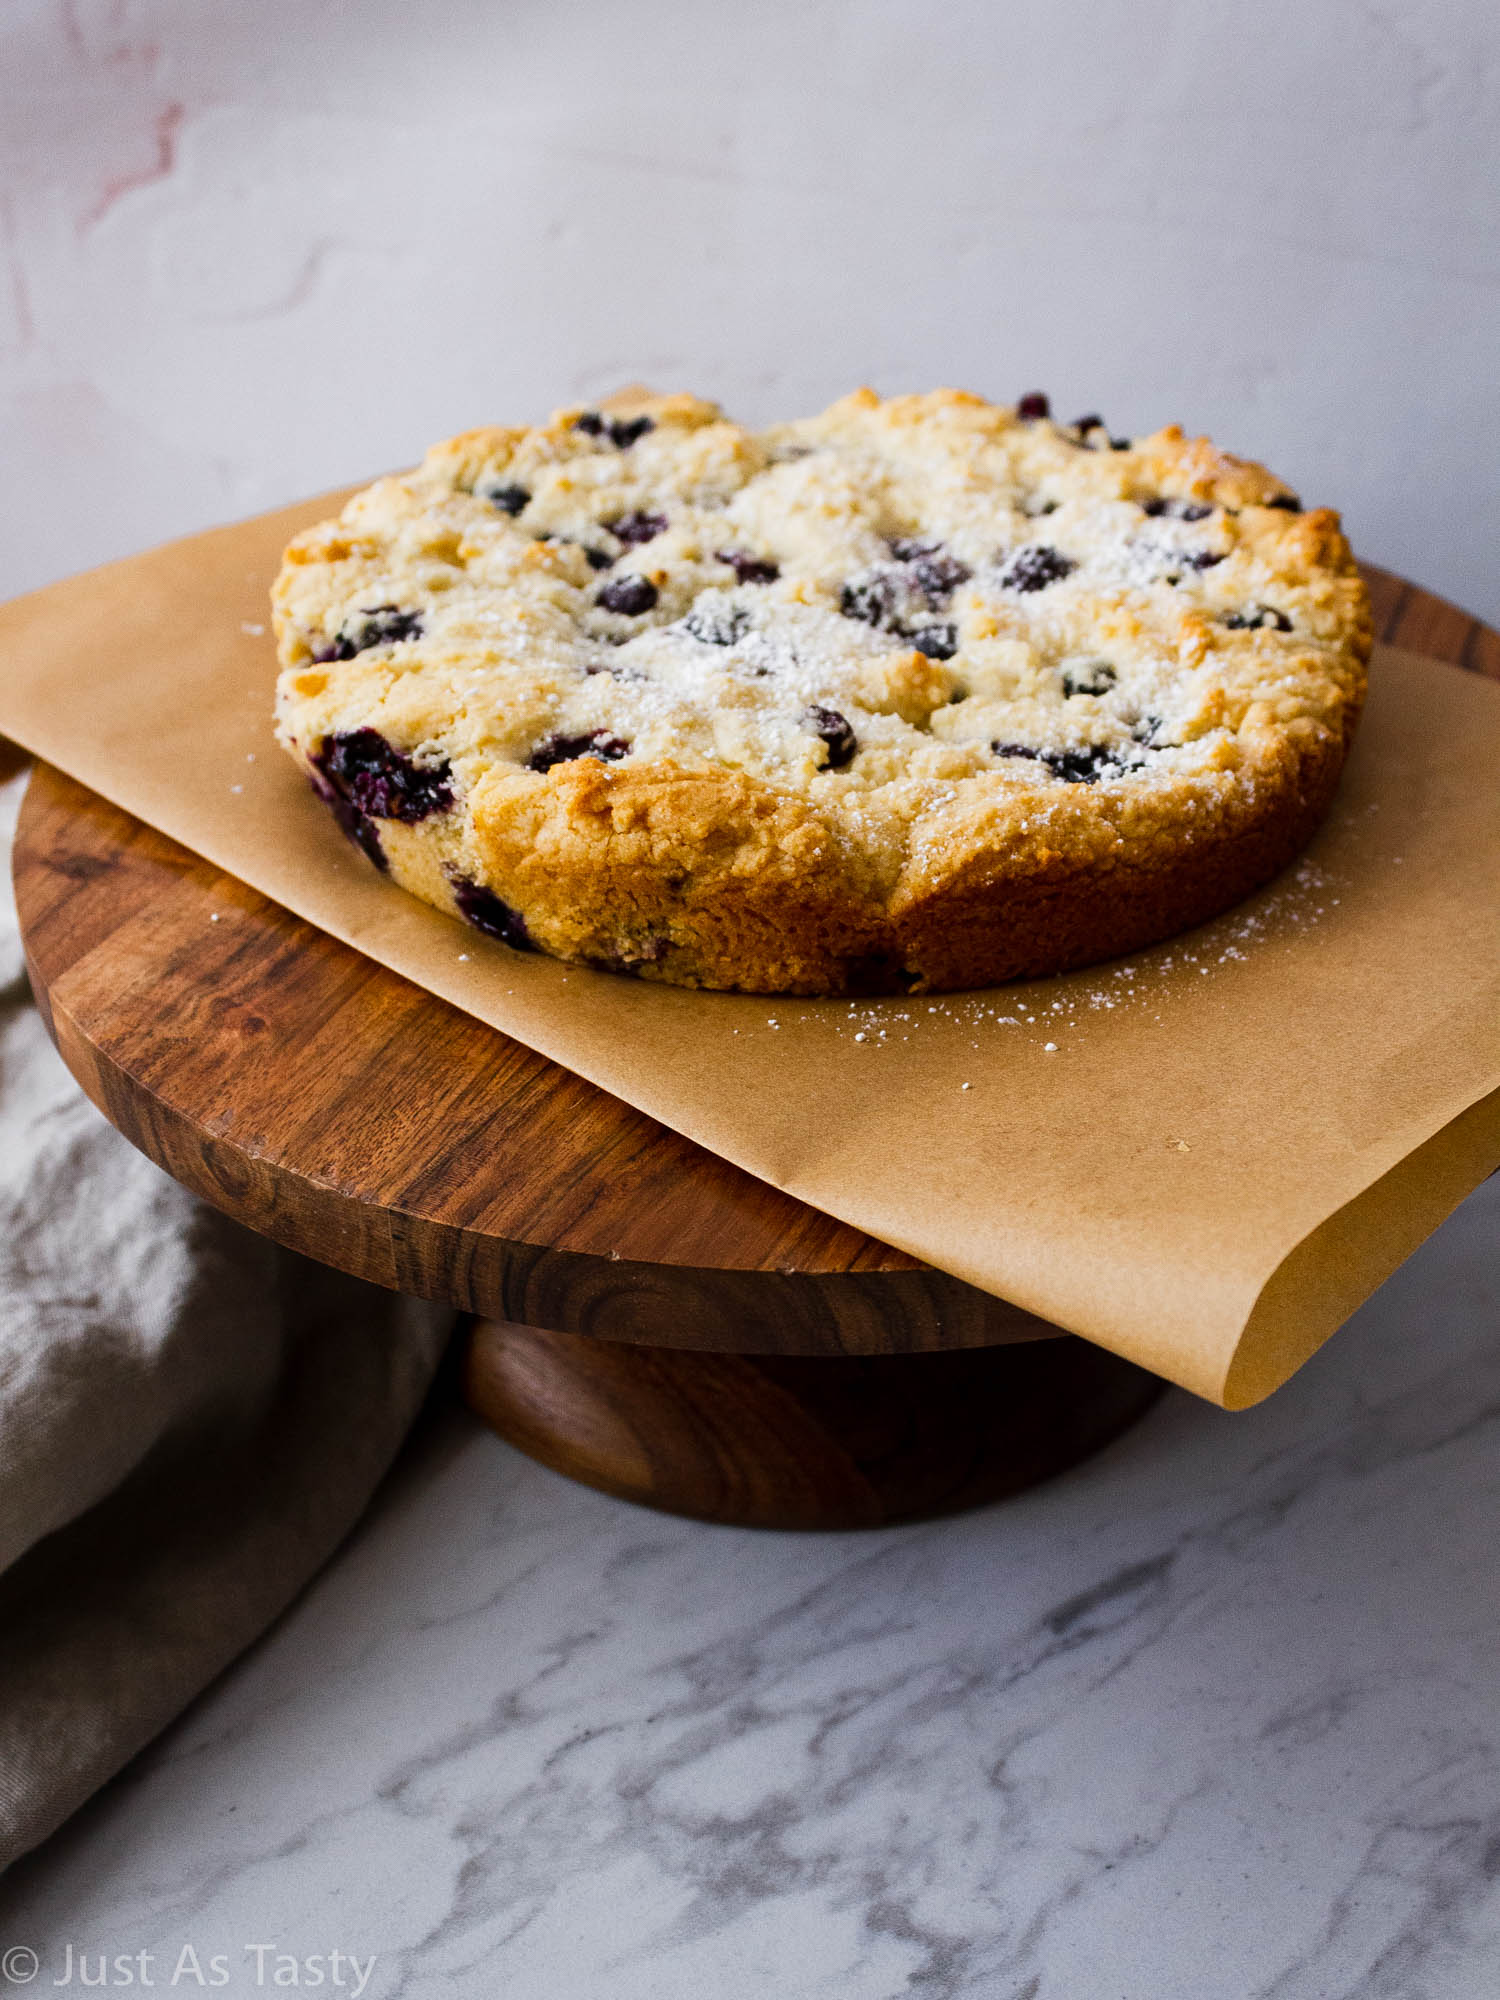 Gluten free blueberry cake on a cake stand.